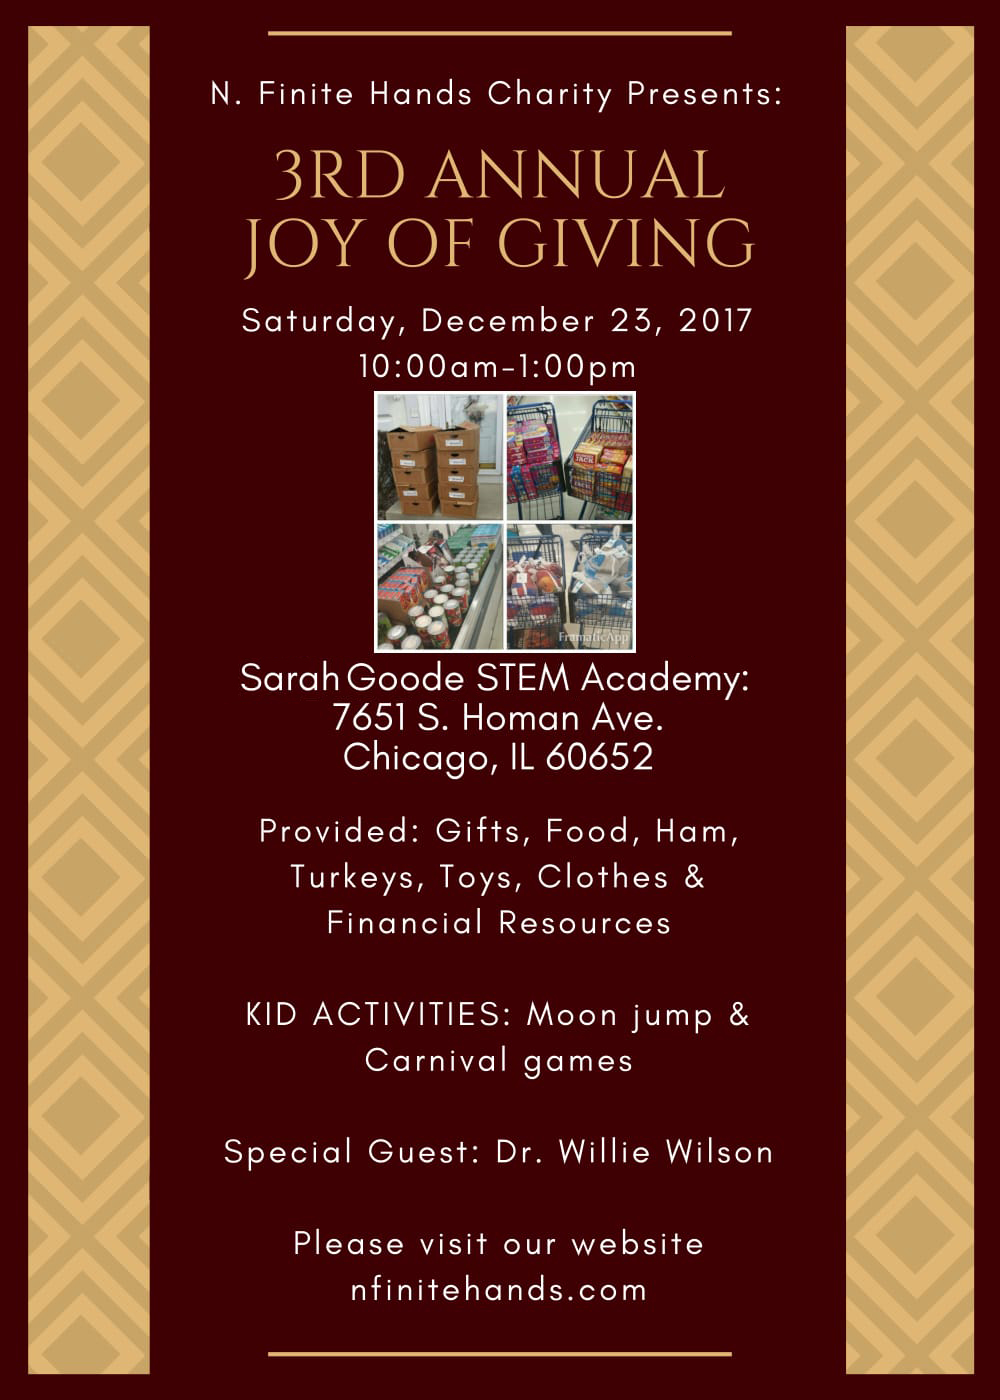 3rd Annual Joy of Giving